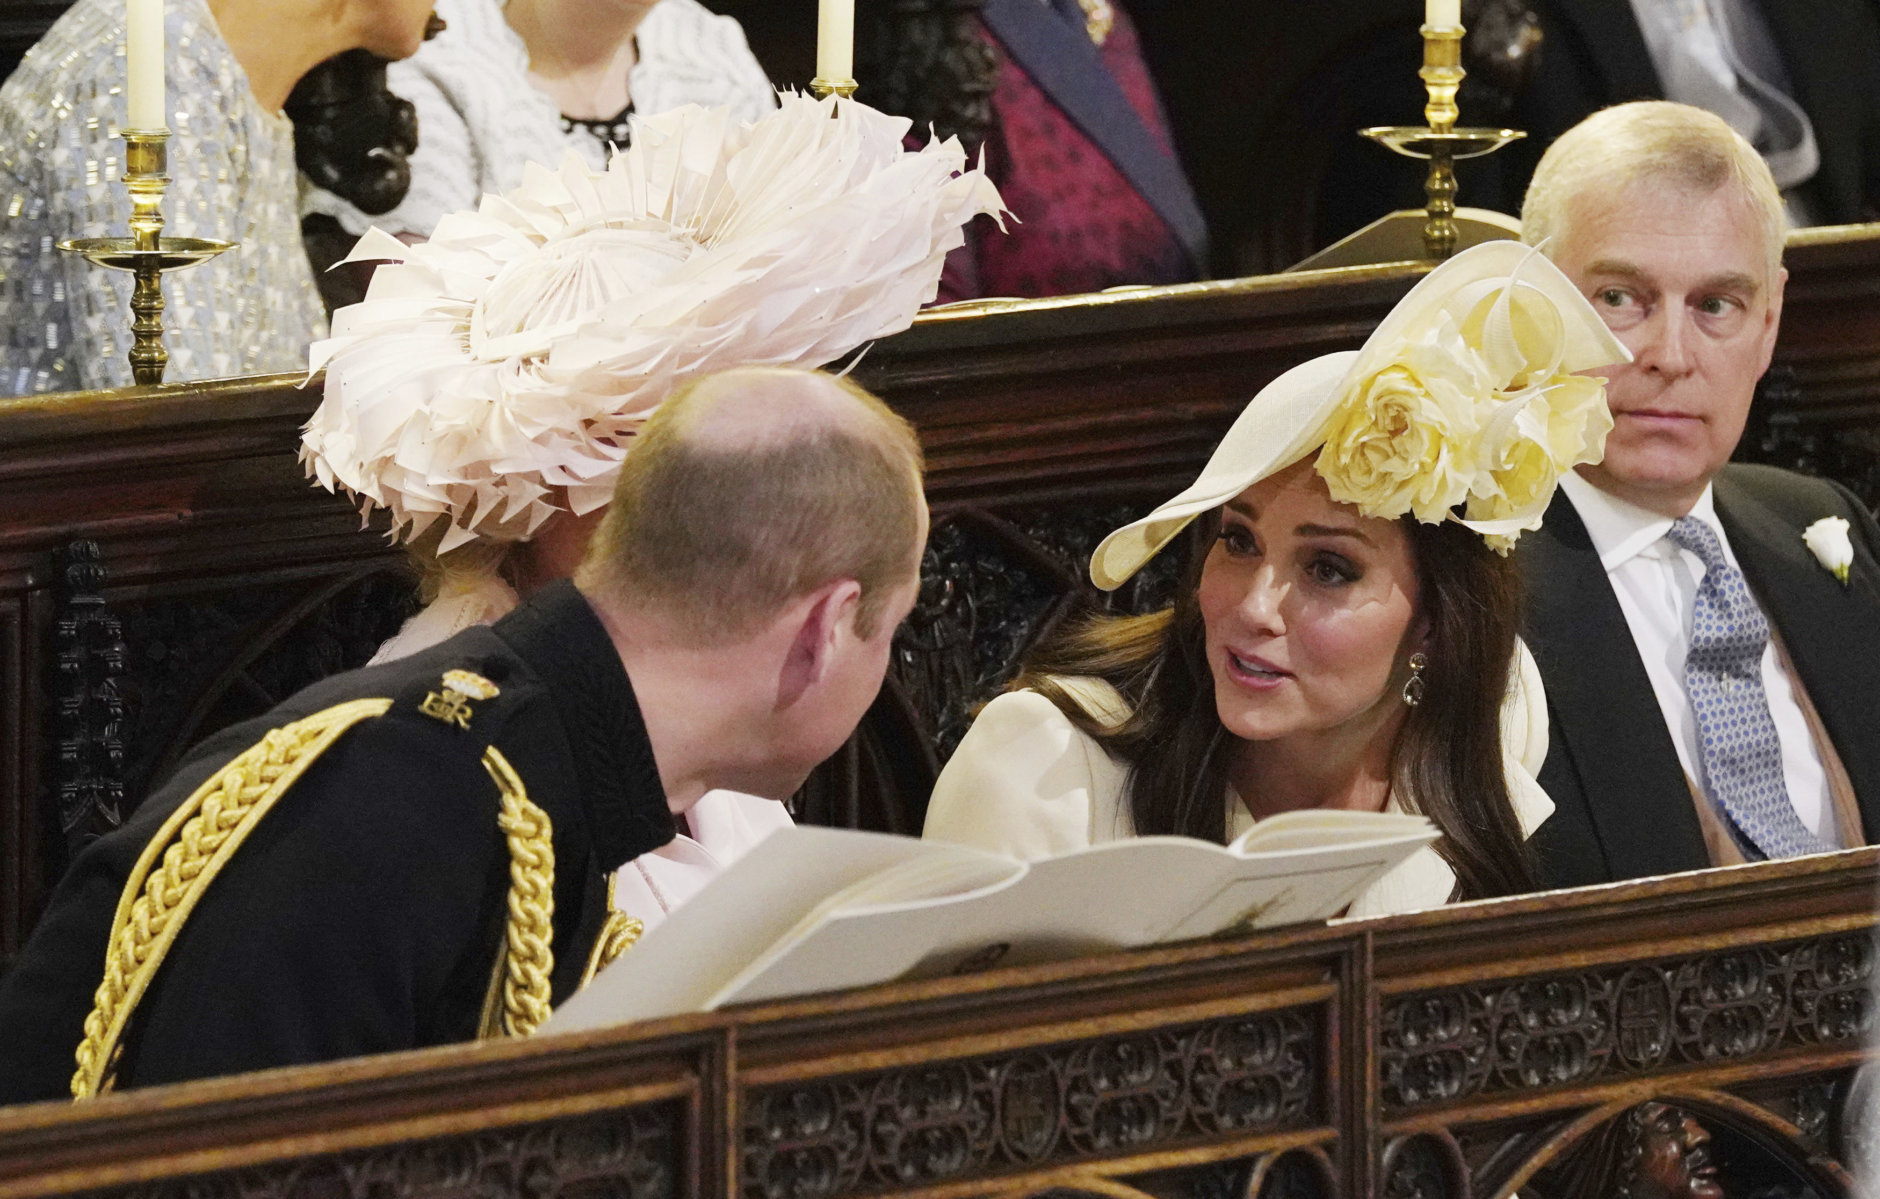 From left, Britain's Prince William, Kate Duchess of Cambridge and Prince Andrew during the wedding service of Prince Harry and Meghan Markle at St. George's Chapel in Windsor Castle in Windsor, near London, England, Saturday, May 19, 2018. (Jonathan Brady/pool photo via AP)